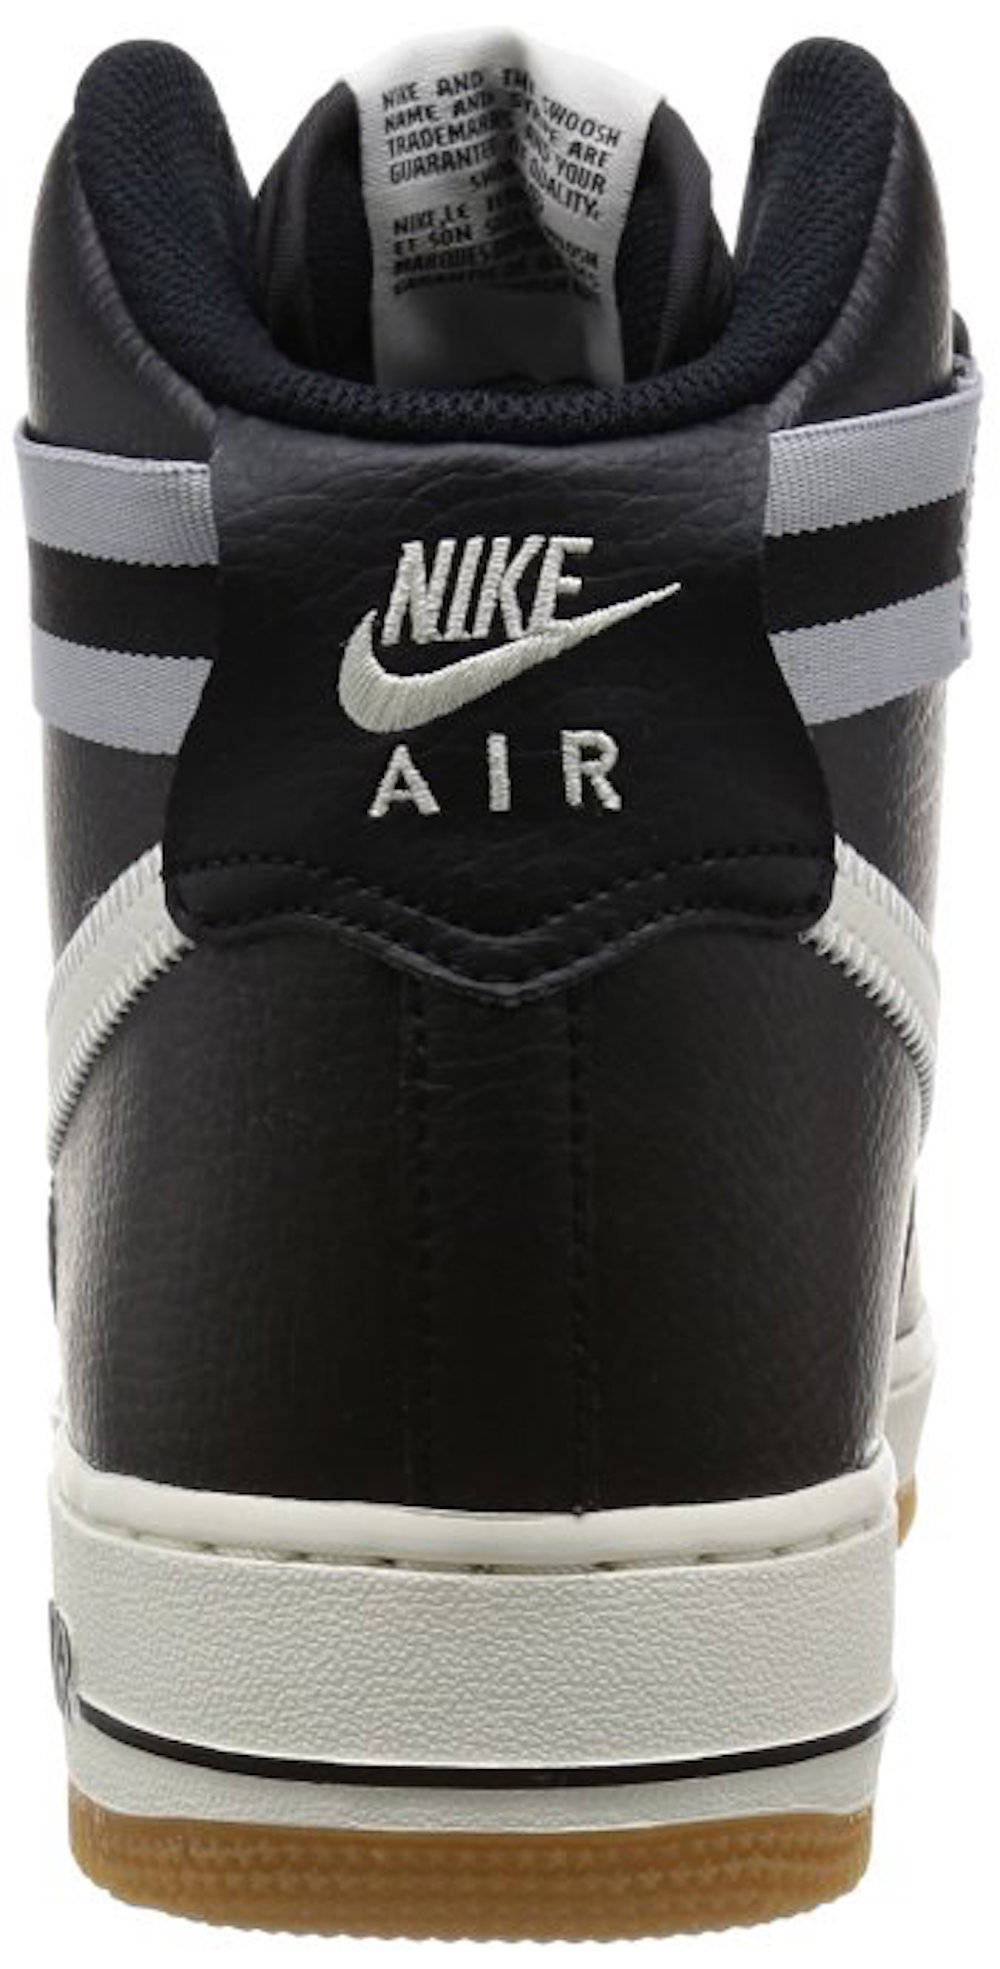 Nike Mens Air Force 1 High '07 Basketball Shoe (7.5 D(M) US)